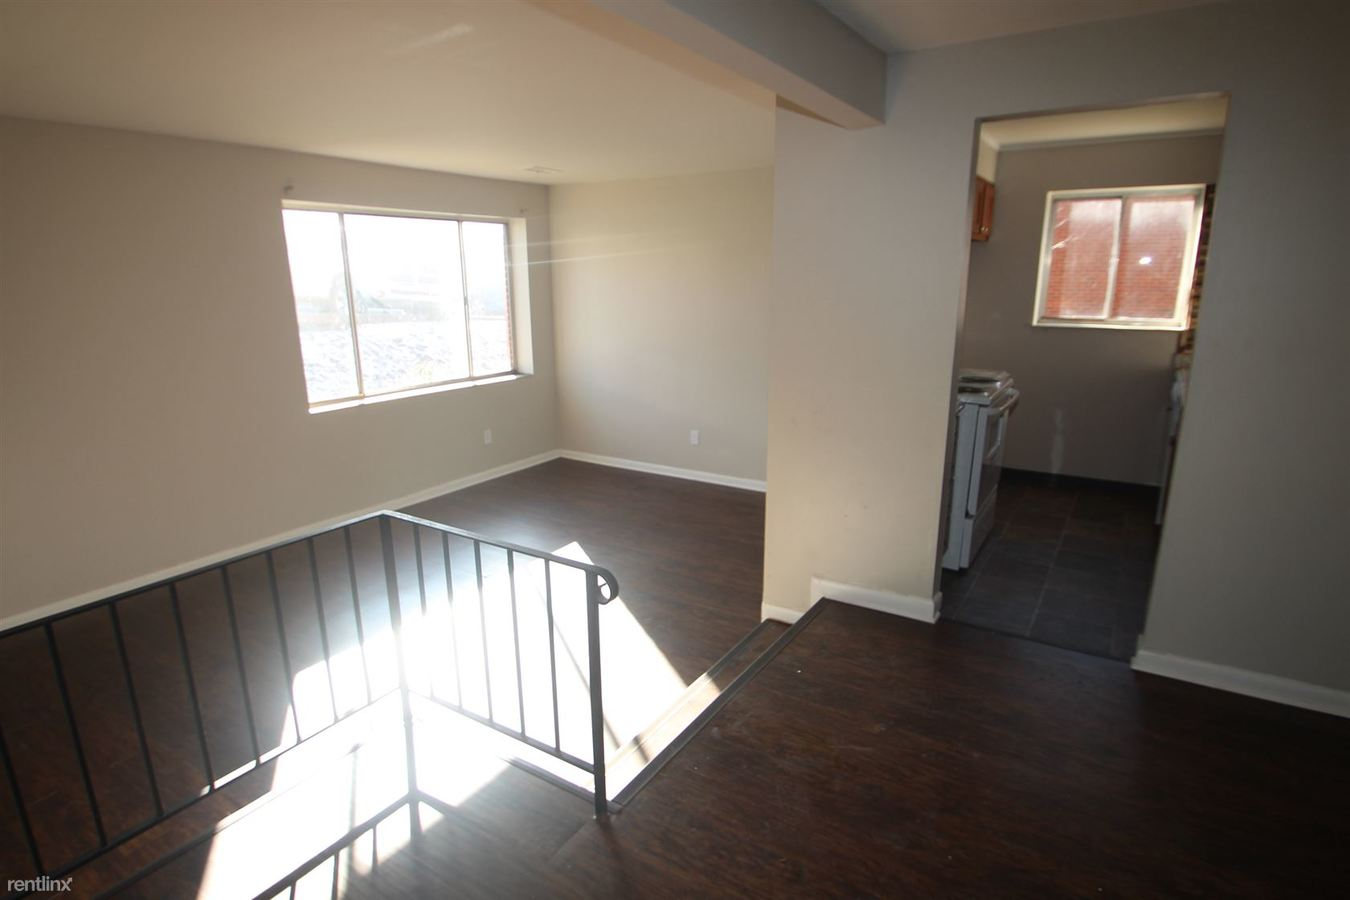 2 Bedrooms 1 Bathroom Apartment for rent at Canterbury Court in Washington, PA